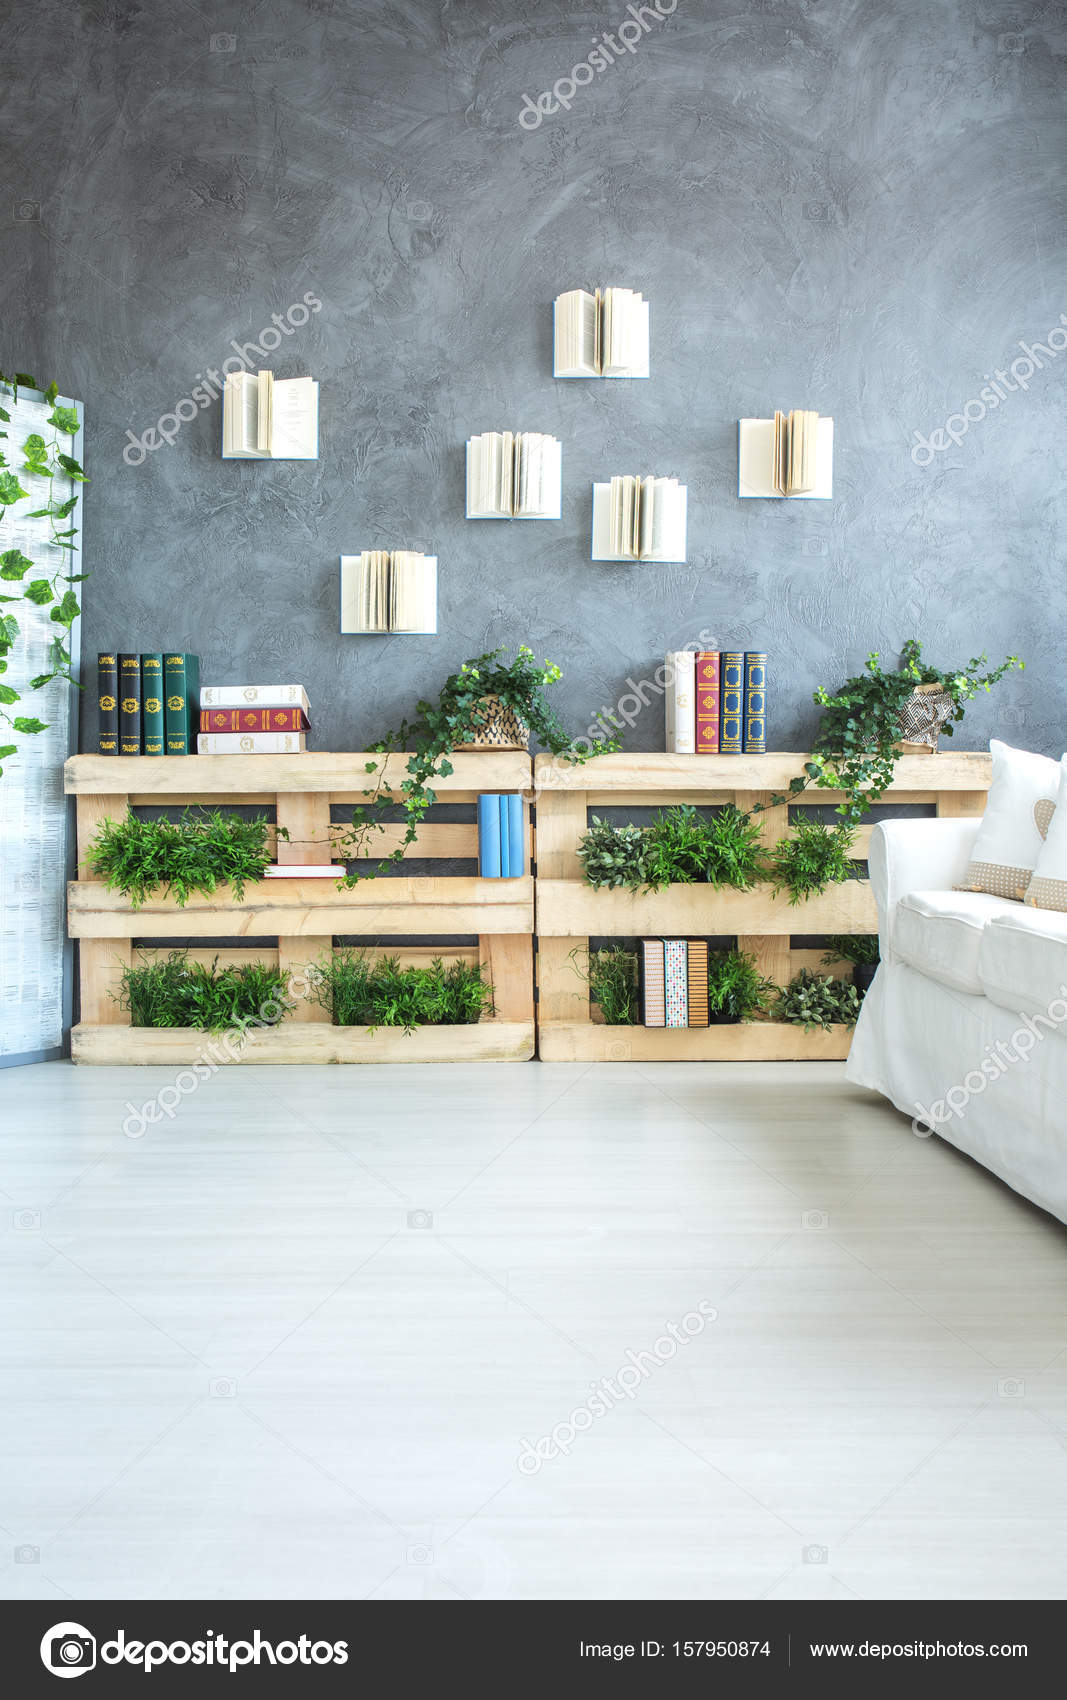 Bookshelf Made Of Pallets In Room Stock Photo